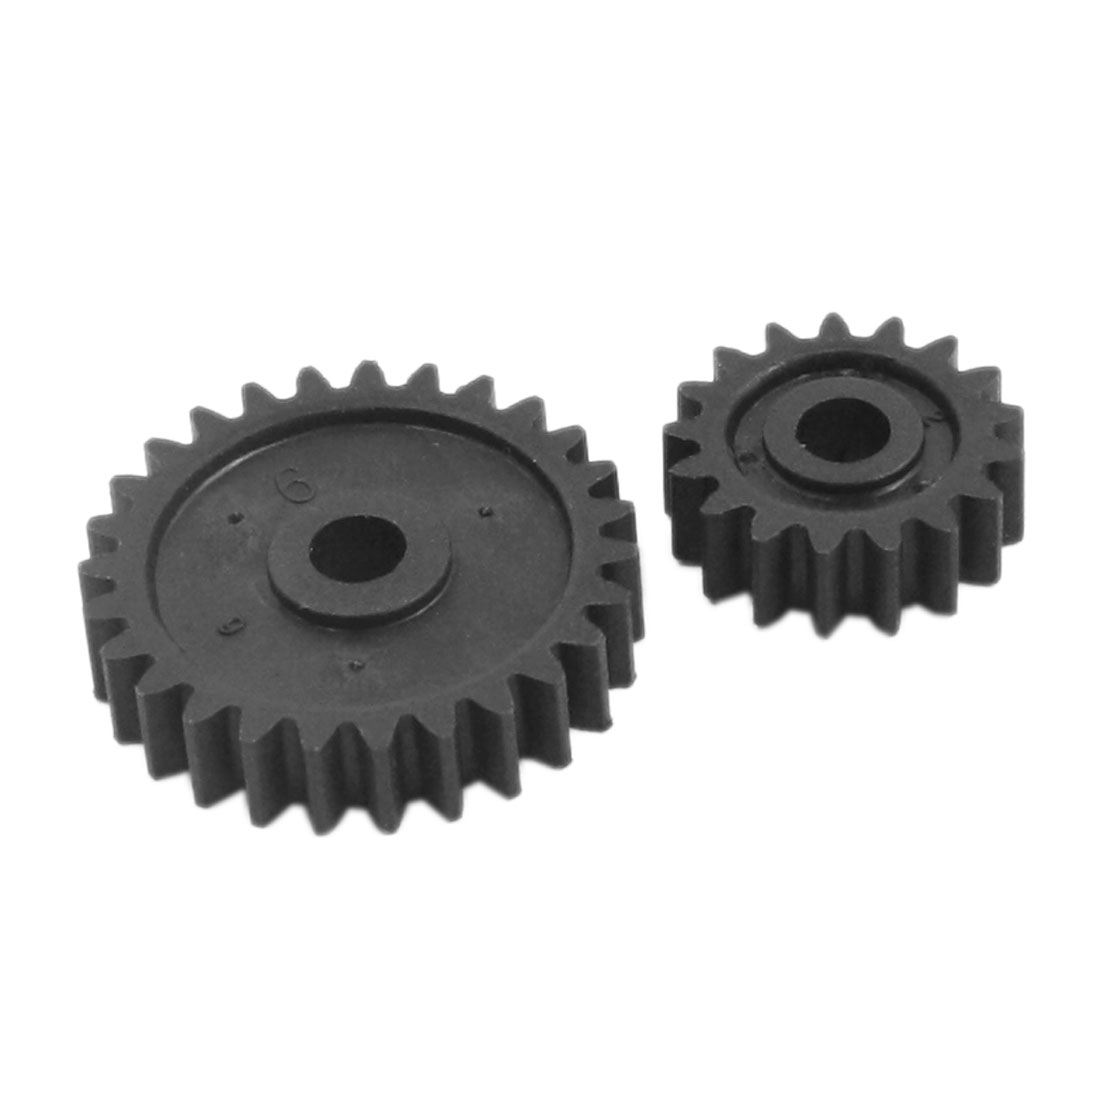 2pcs 08067 Plastic Diff. Gears 4(17T) 5(27T) for 94188 RC 1/10 Car